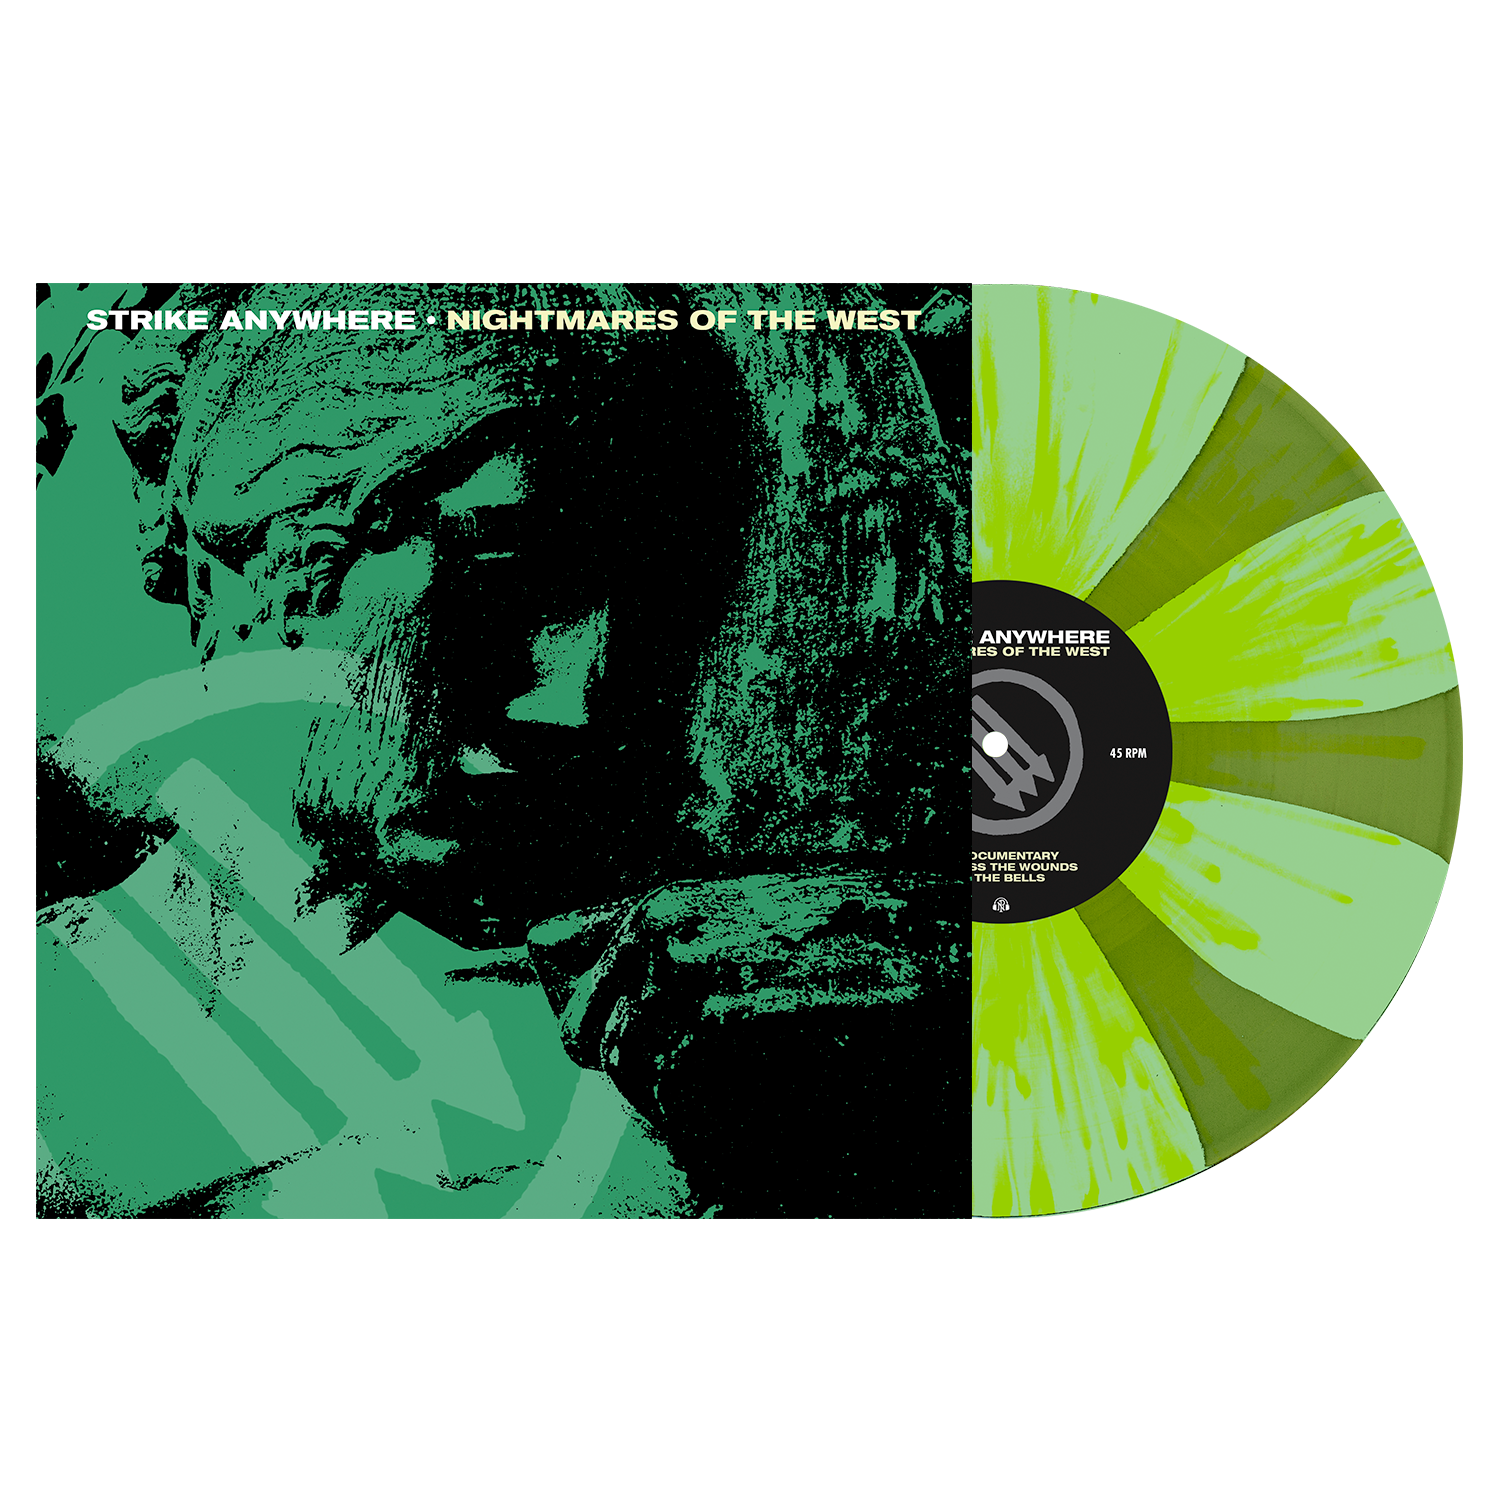 Strike Anywhere 'Nightmares of the West' LP (PN Webstore Exclusive 1 - Doublemint & Swamp Green Pinwheel w/ Heavy Neon Yellow Splatter)